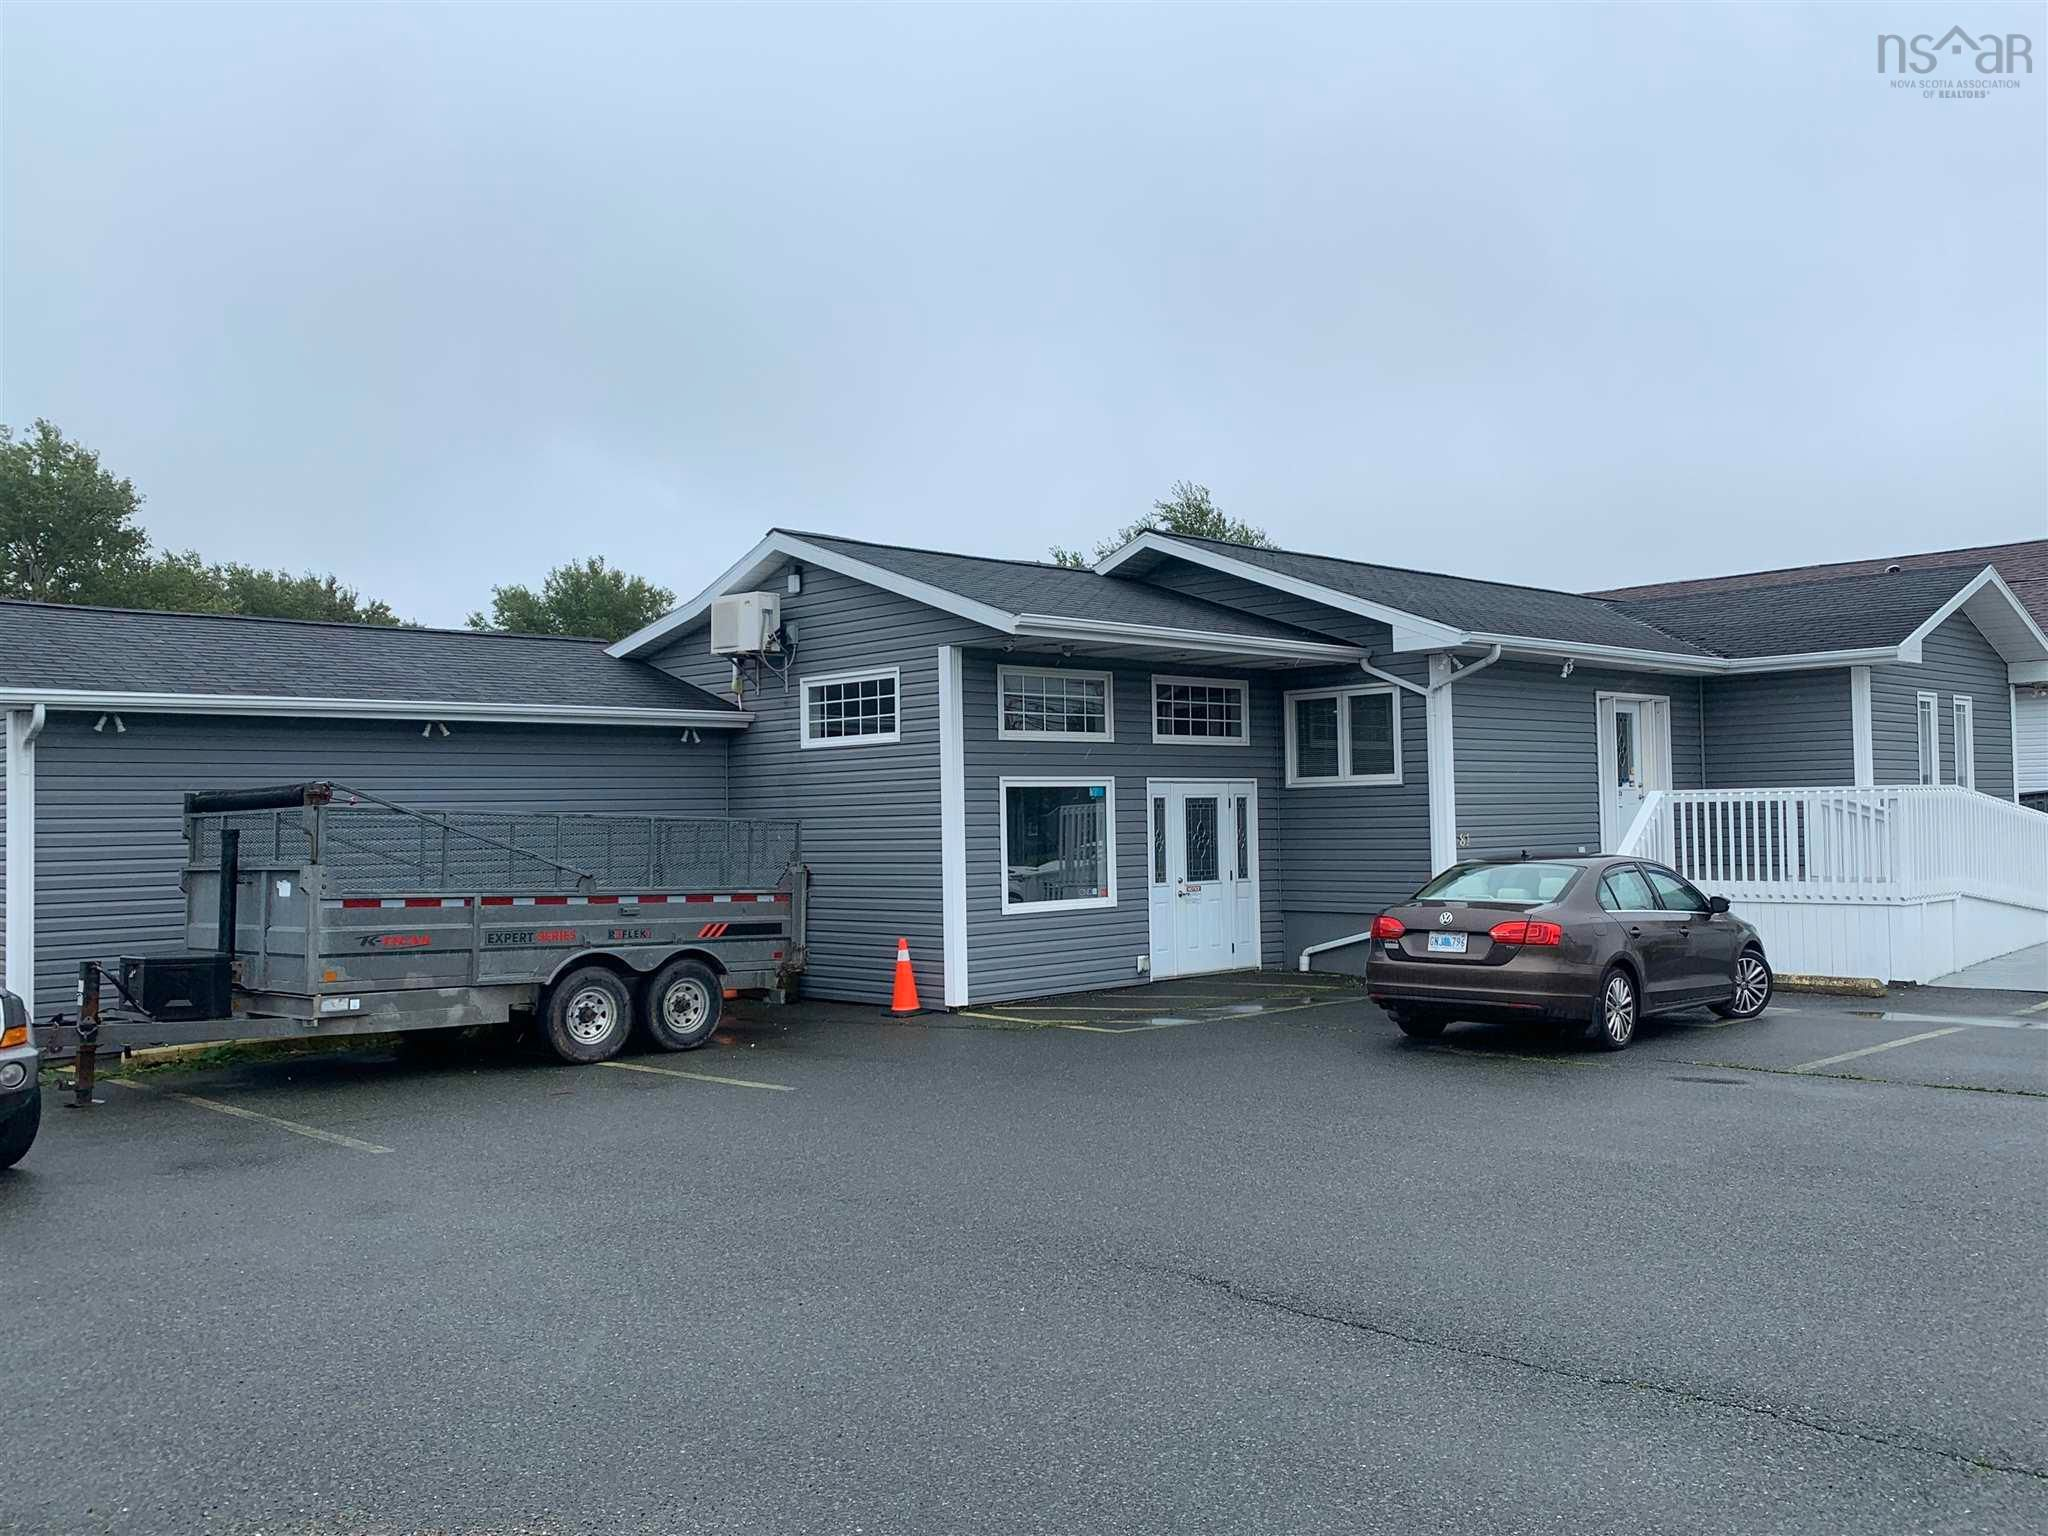 Main Photo: 81 Reserve Street in Glace Bay: 203-Glace Bay Commercial  (Cape Breton)  : MLS®# 202125209